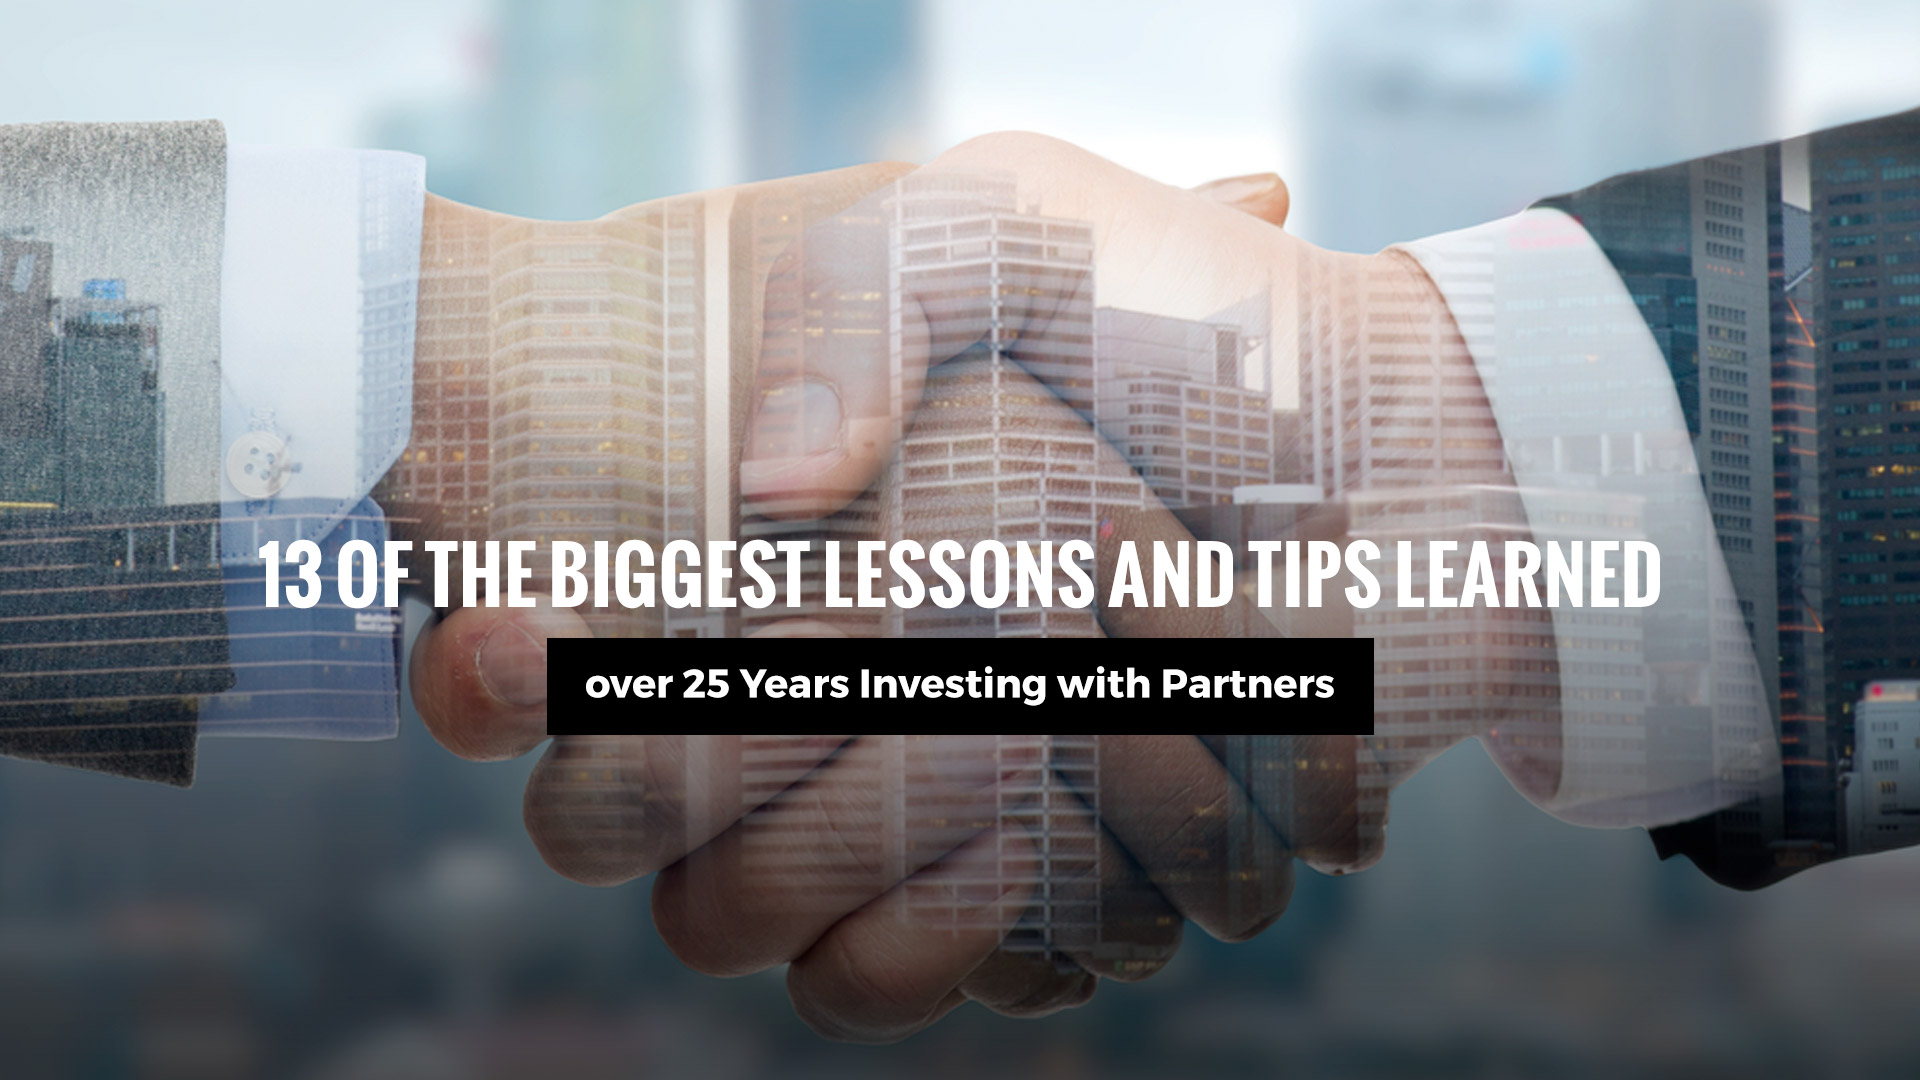 13 of the Biggest Lessons and Tips Learned from over 25 Years Investing with Partners